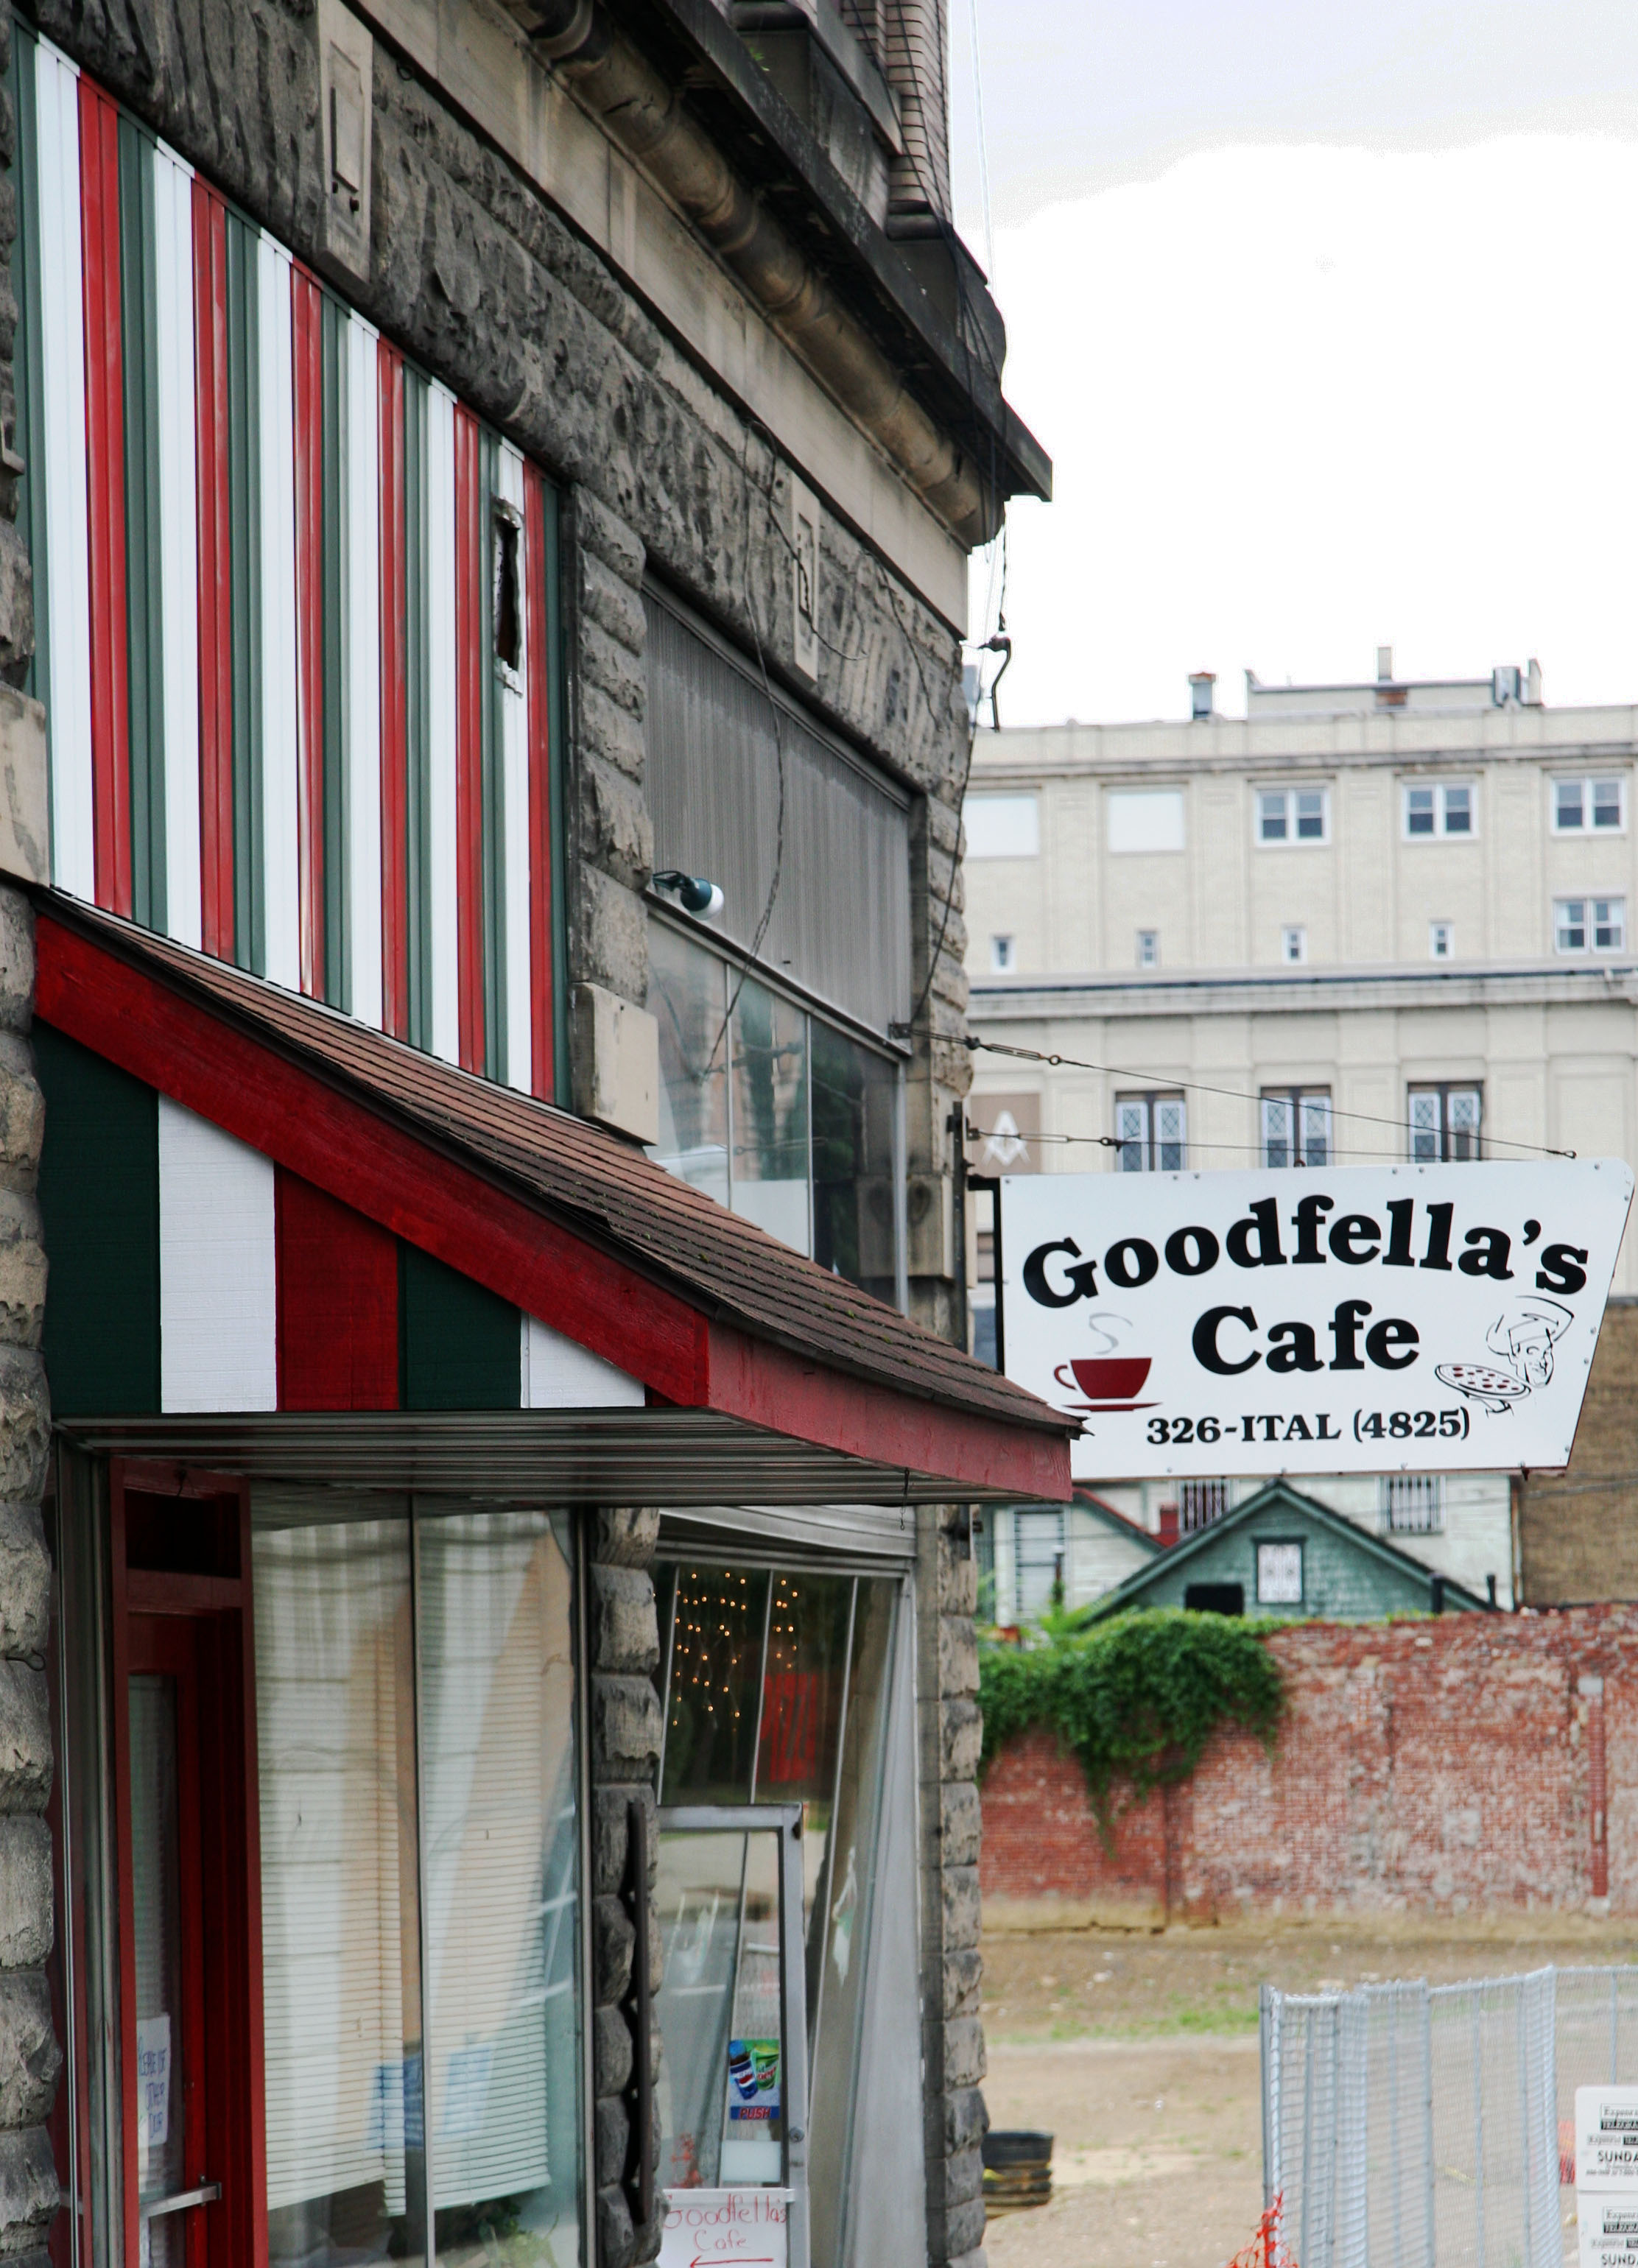 Goodfellows Cage, Bspo06, Building, Cafe, Restaurant, HQ Photo